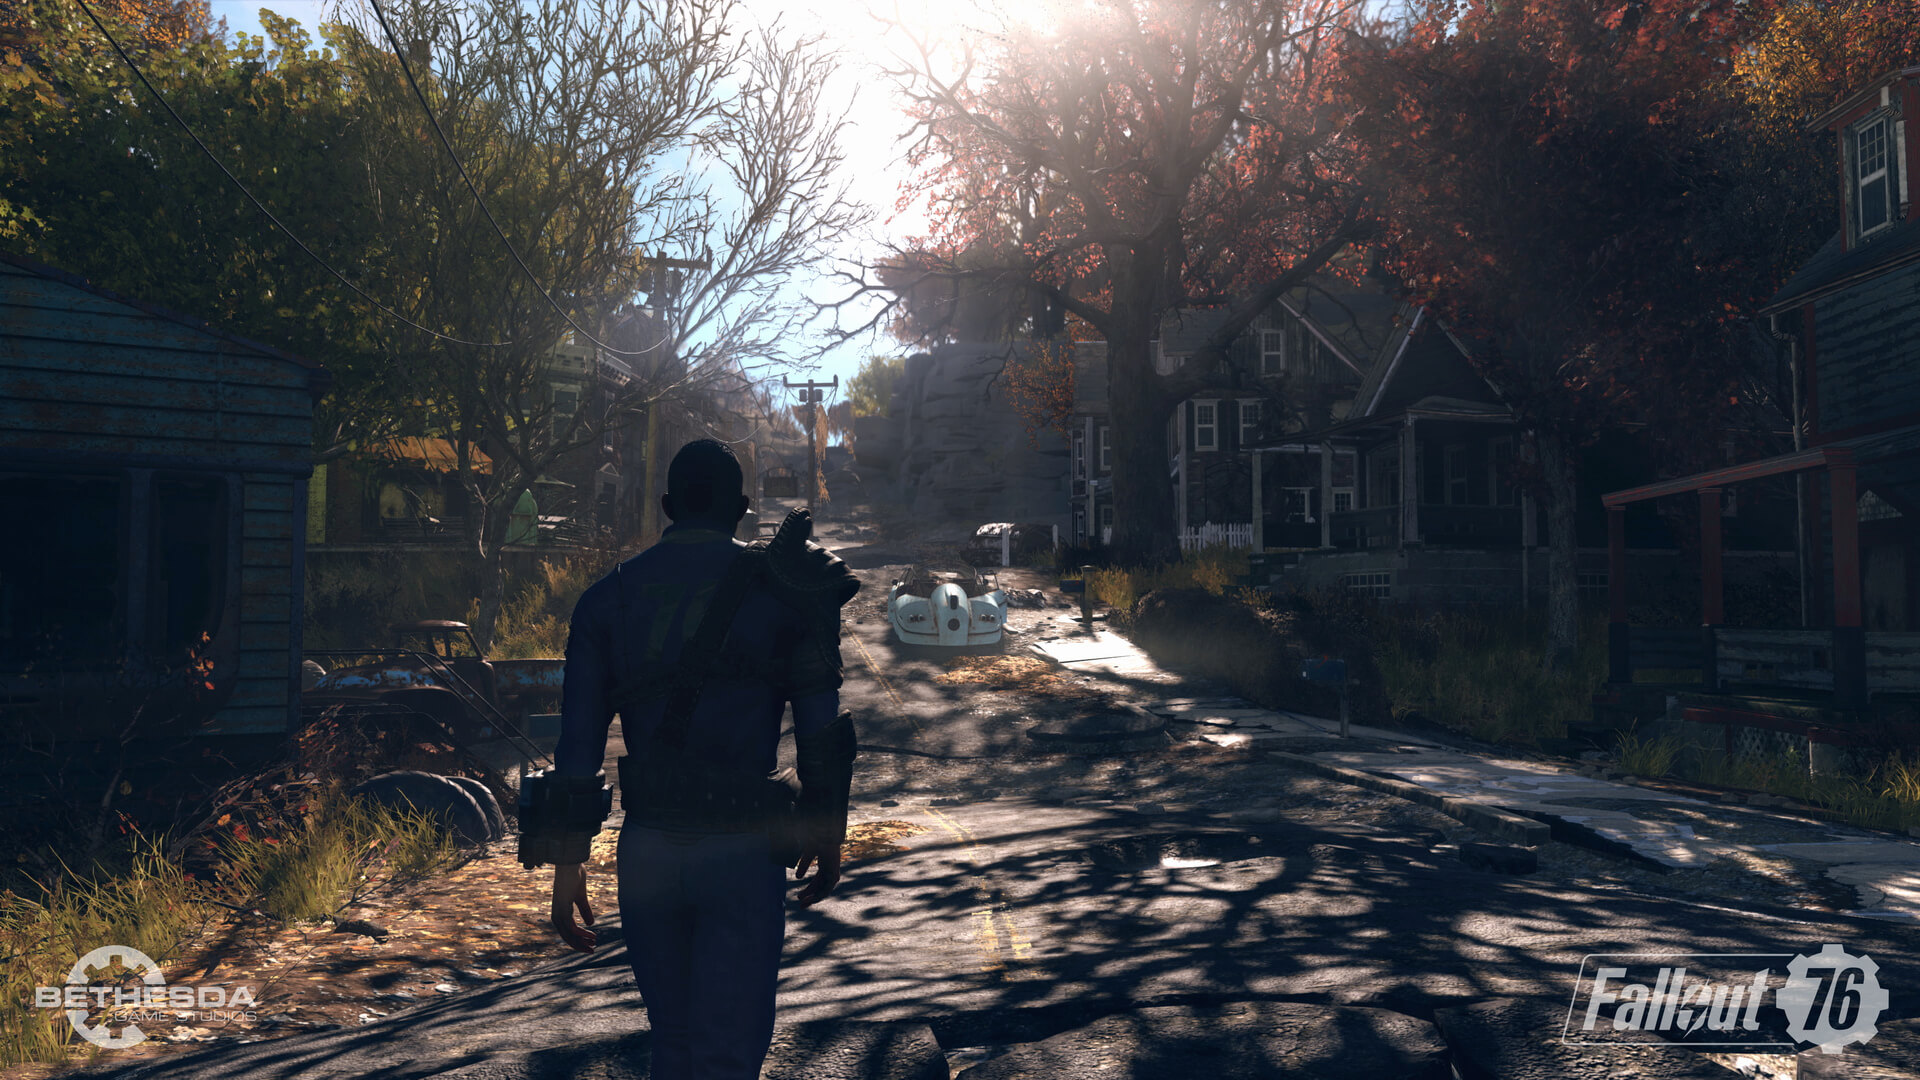 Fallout 76: Wild Appalachia Update 8.5 available for download, full patch release notes revealed